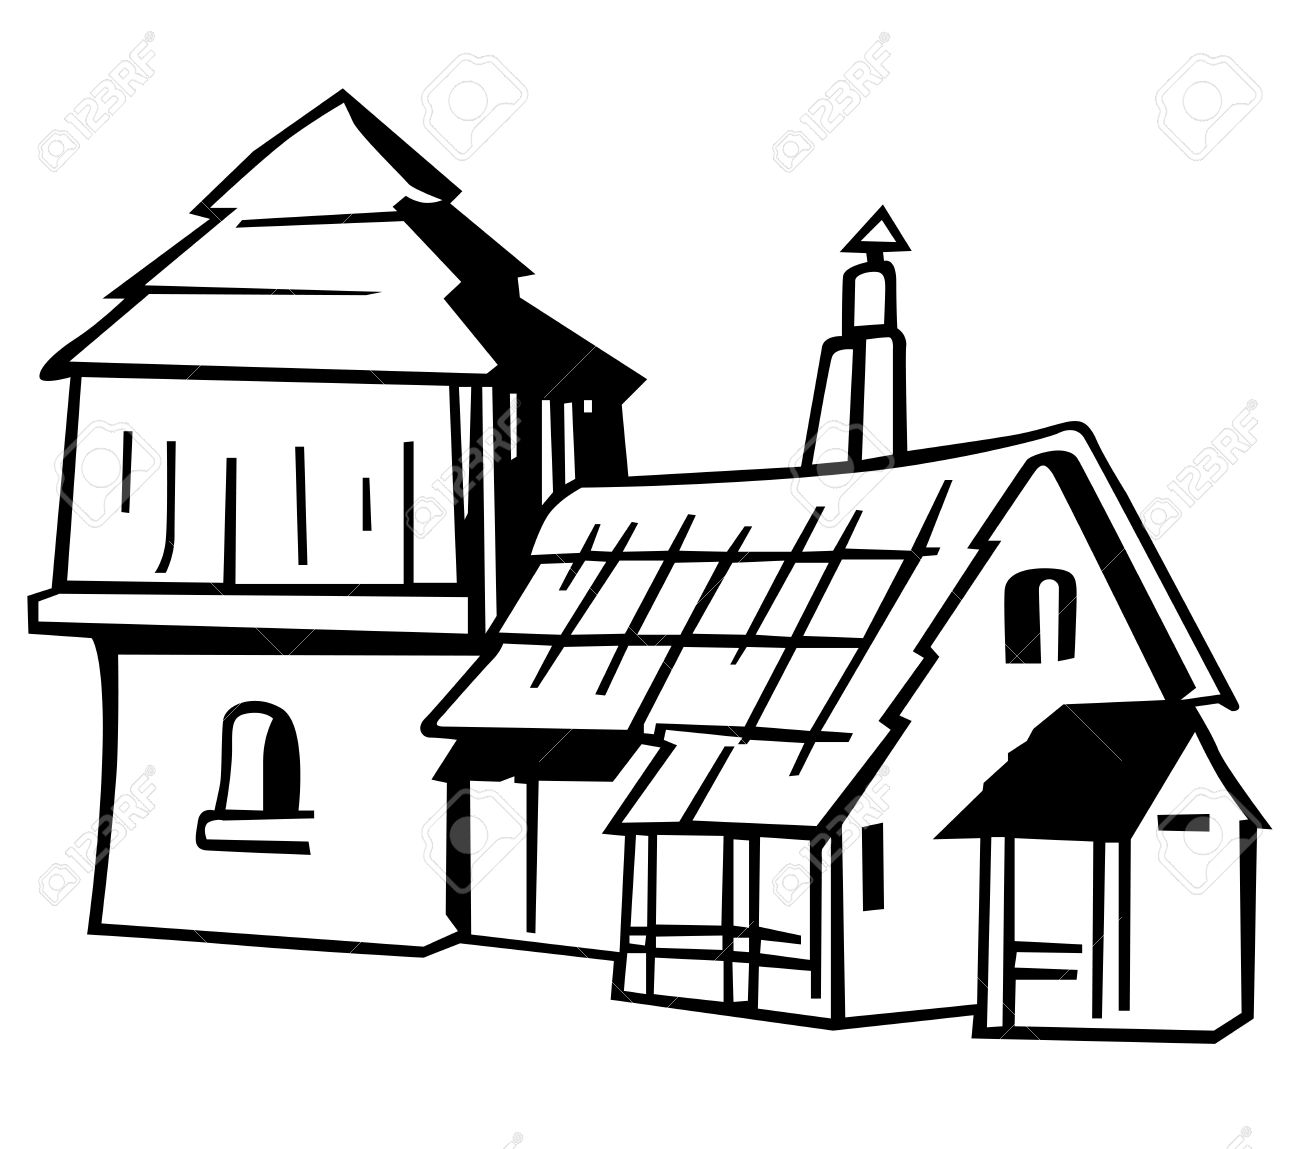 village house black and white cartoon illustration royalty free Black and White Cartoon Faces village house black and white cartoon illustration stock vector 12483338